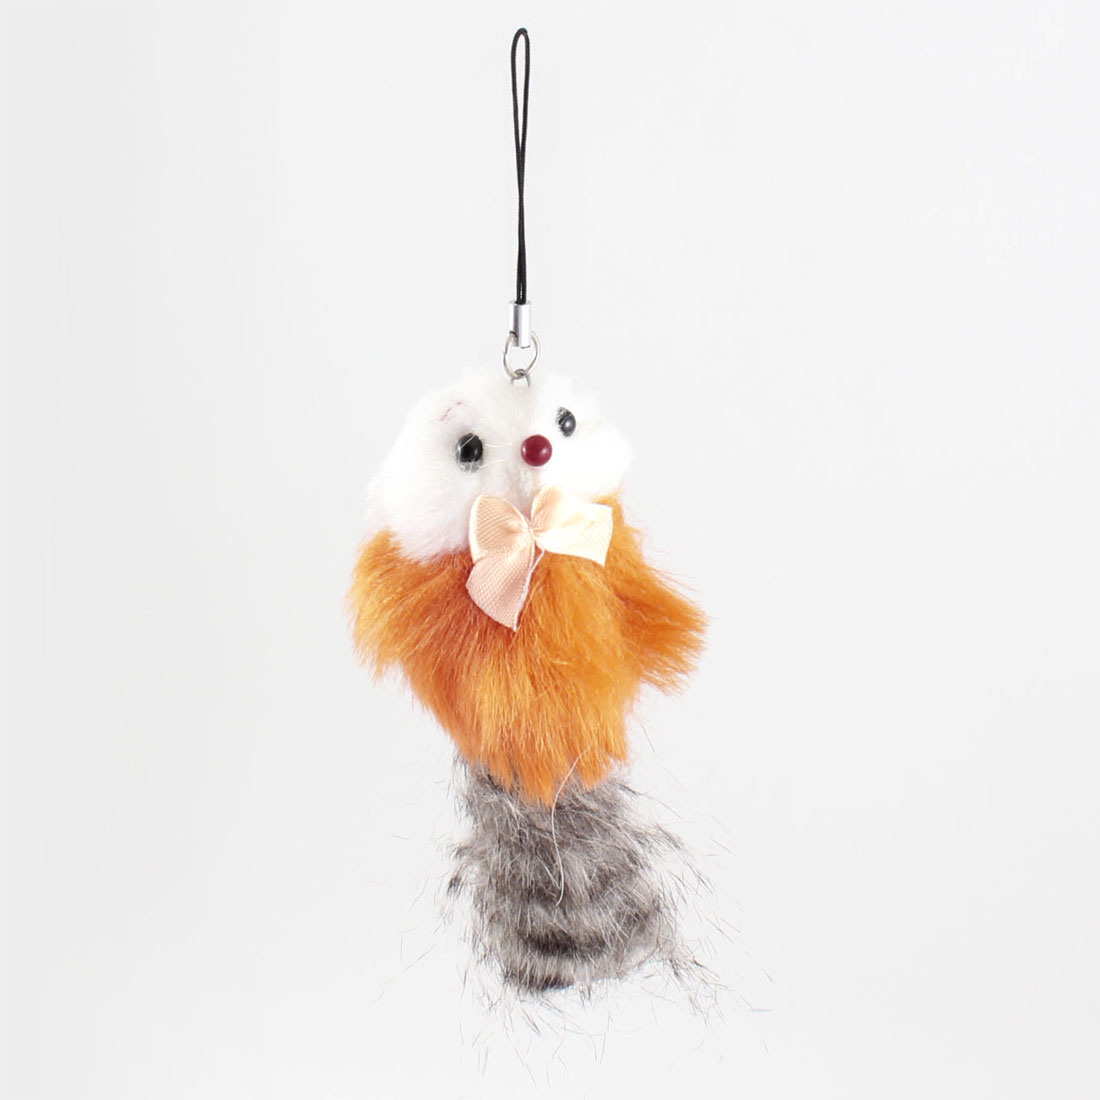 Orange Gray Feather Mouse Charm Strap Pendant for Phone Mp3 Mp4